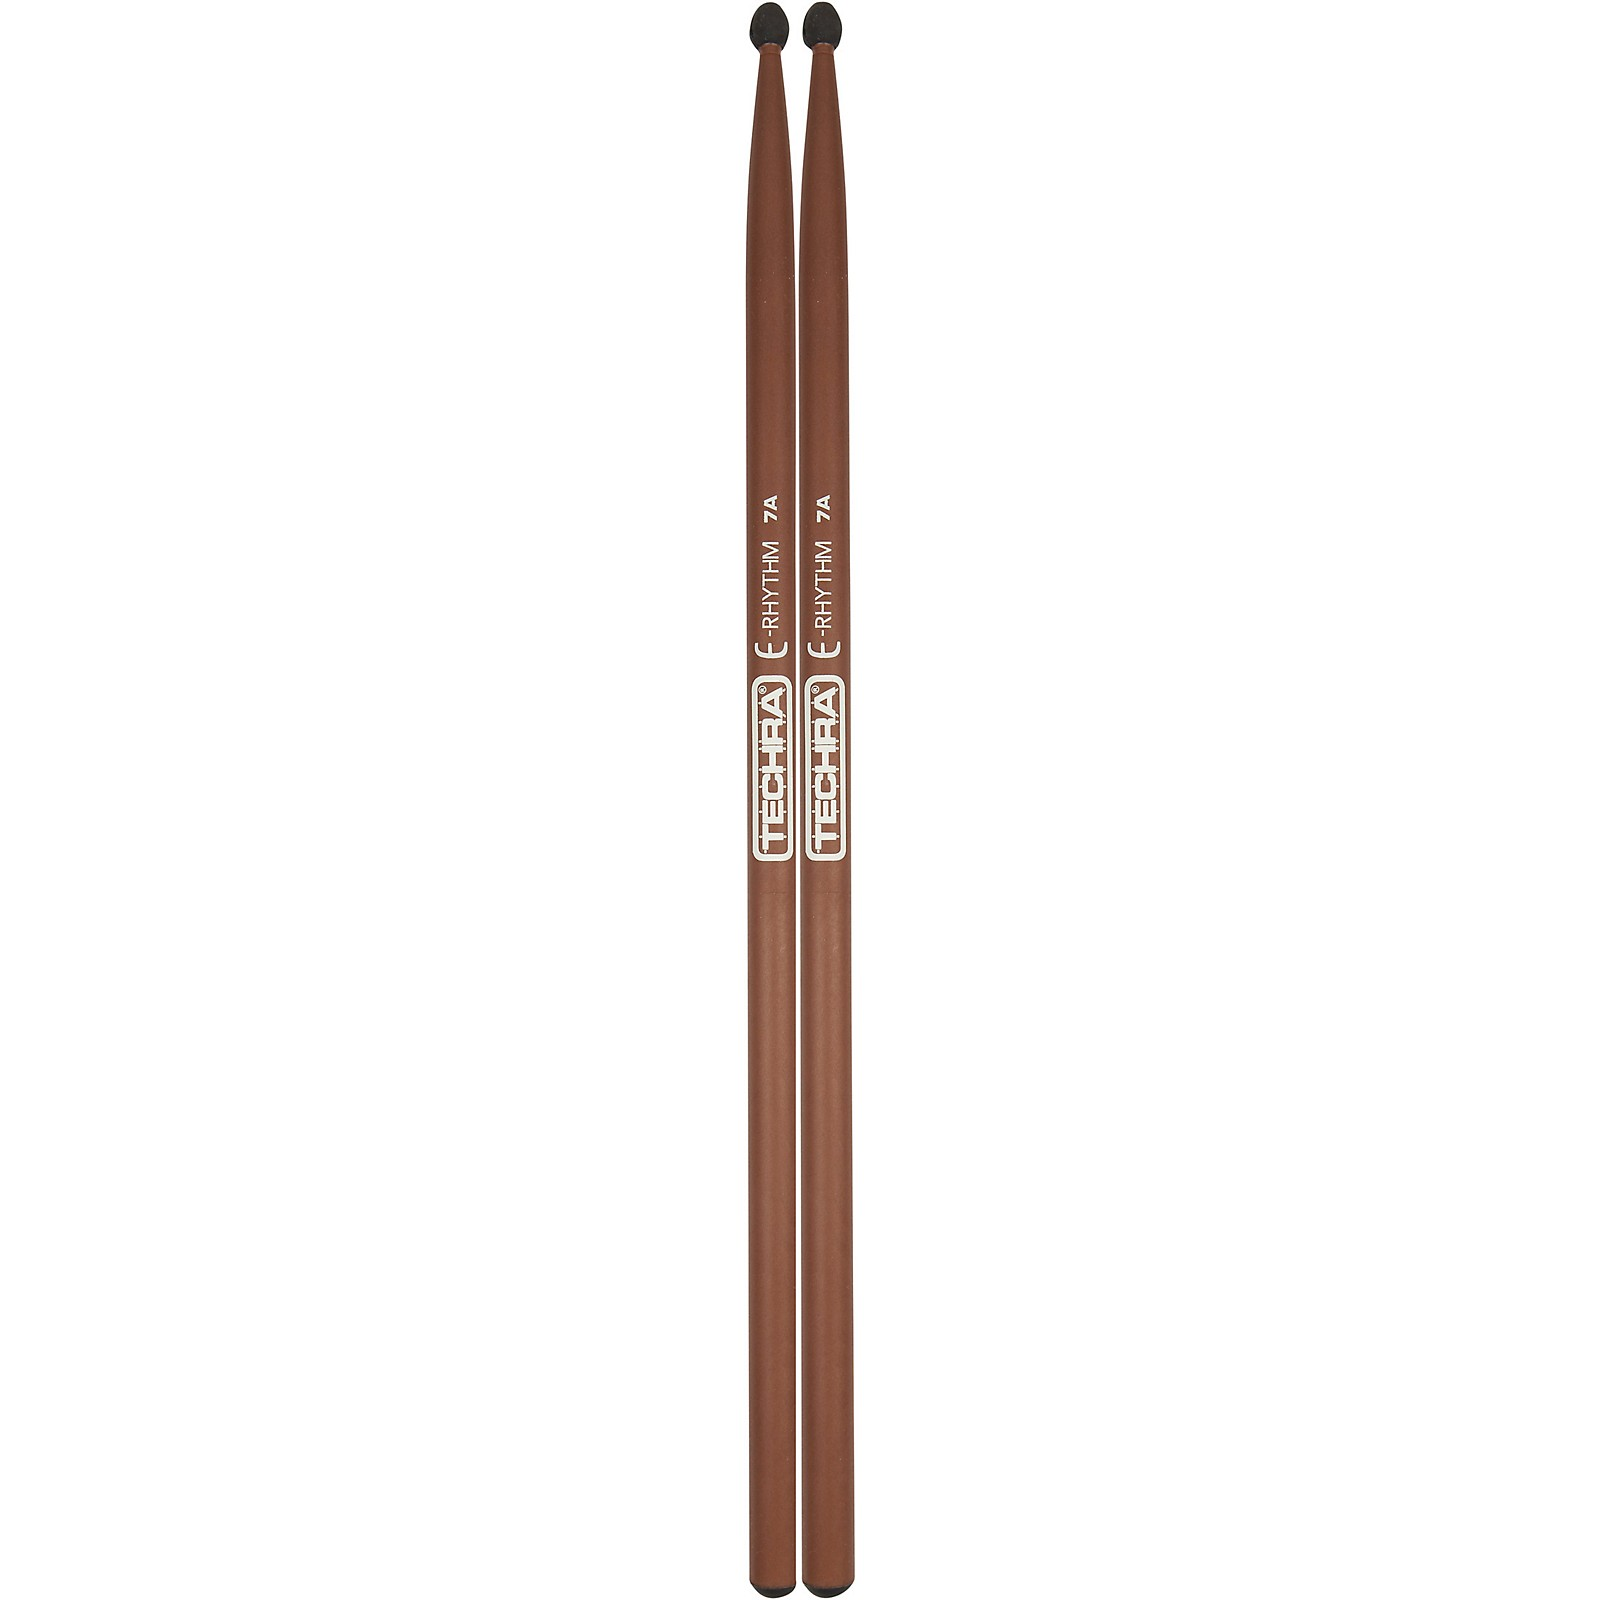 TECHRA E-Rhythm Series Carbon Fiber Drum Sticks